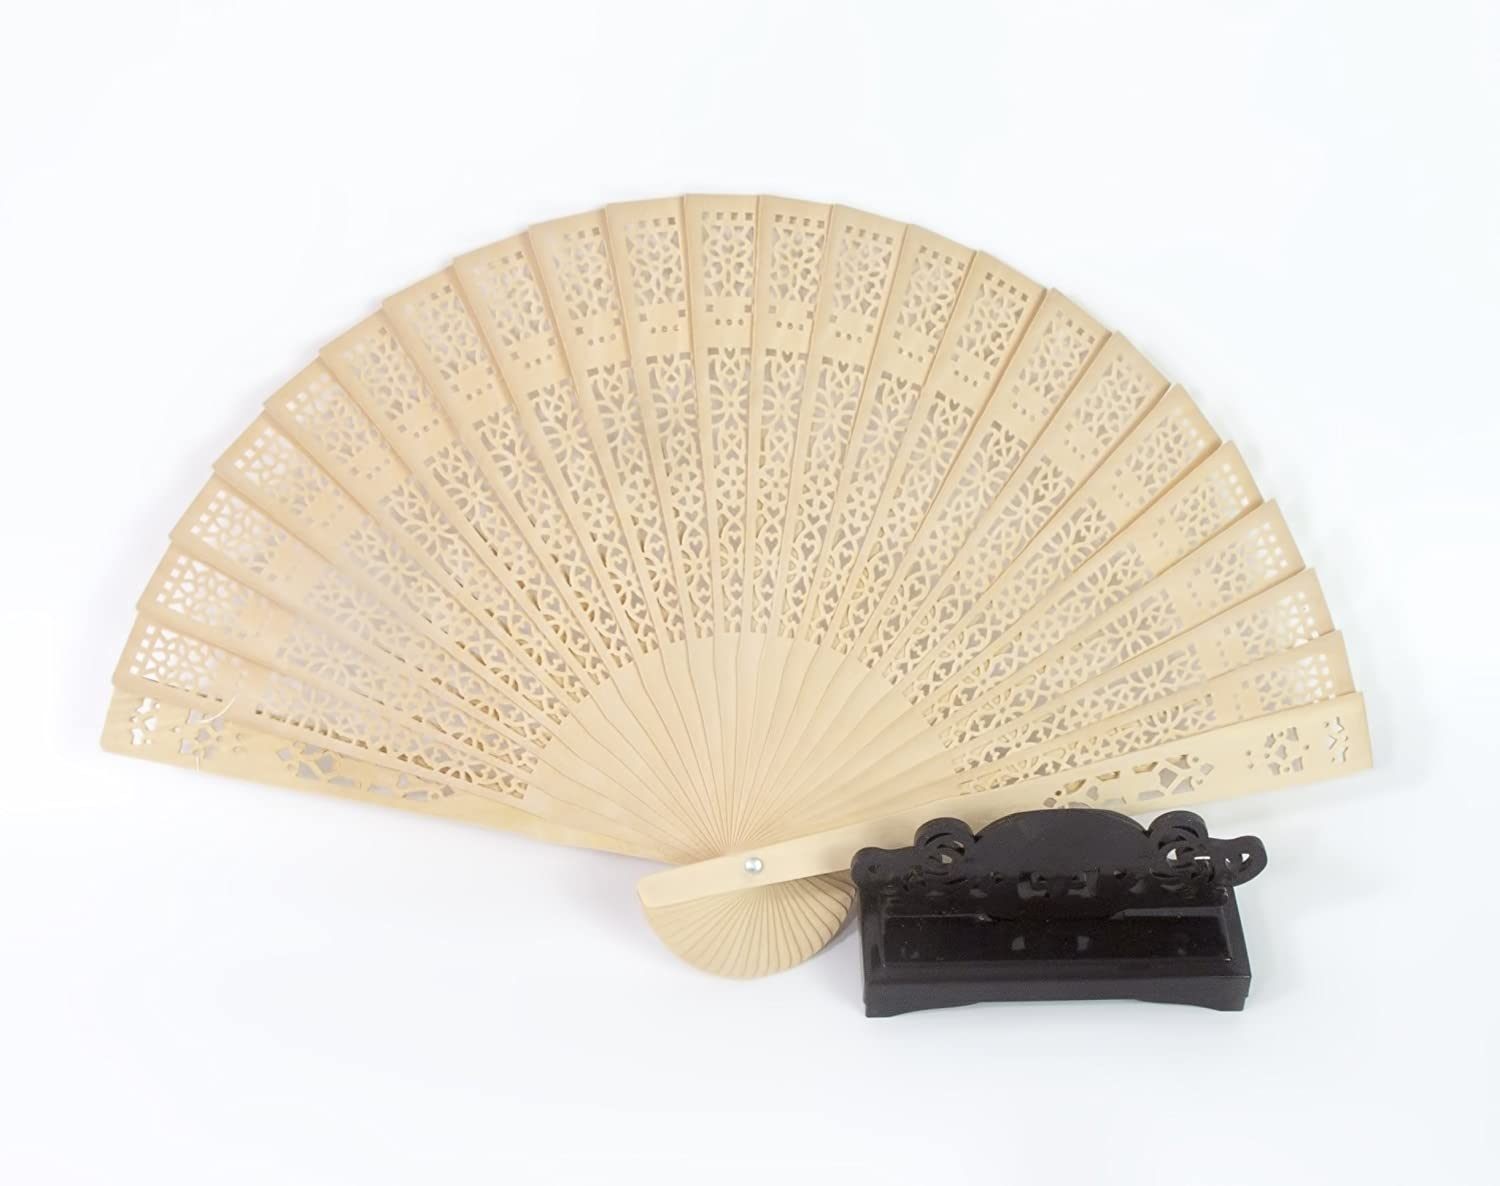 All In One Chinese Scented Wooden Hand Held Folding Fans For Craft Home Wedding Party Event Decoration Gifts 1pc With Fan Holder